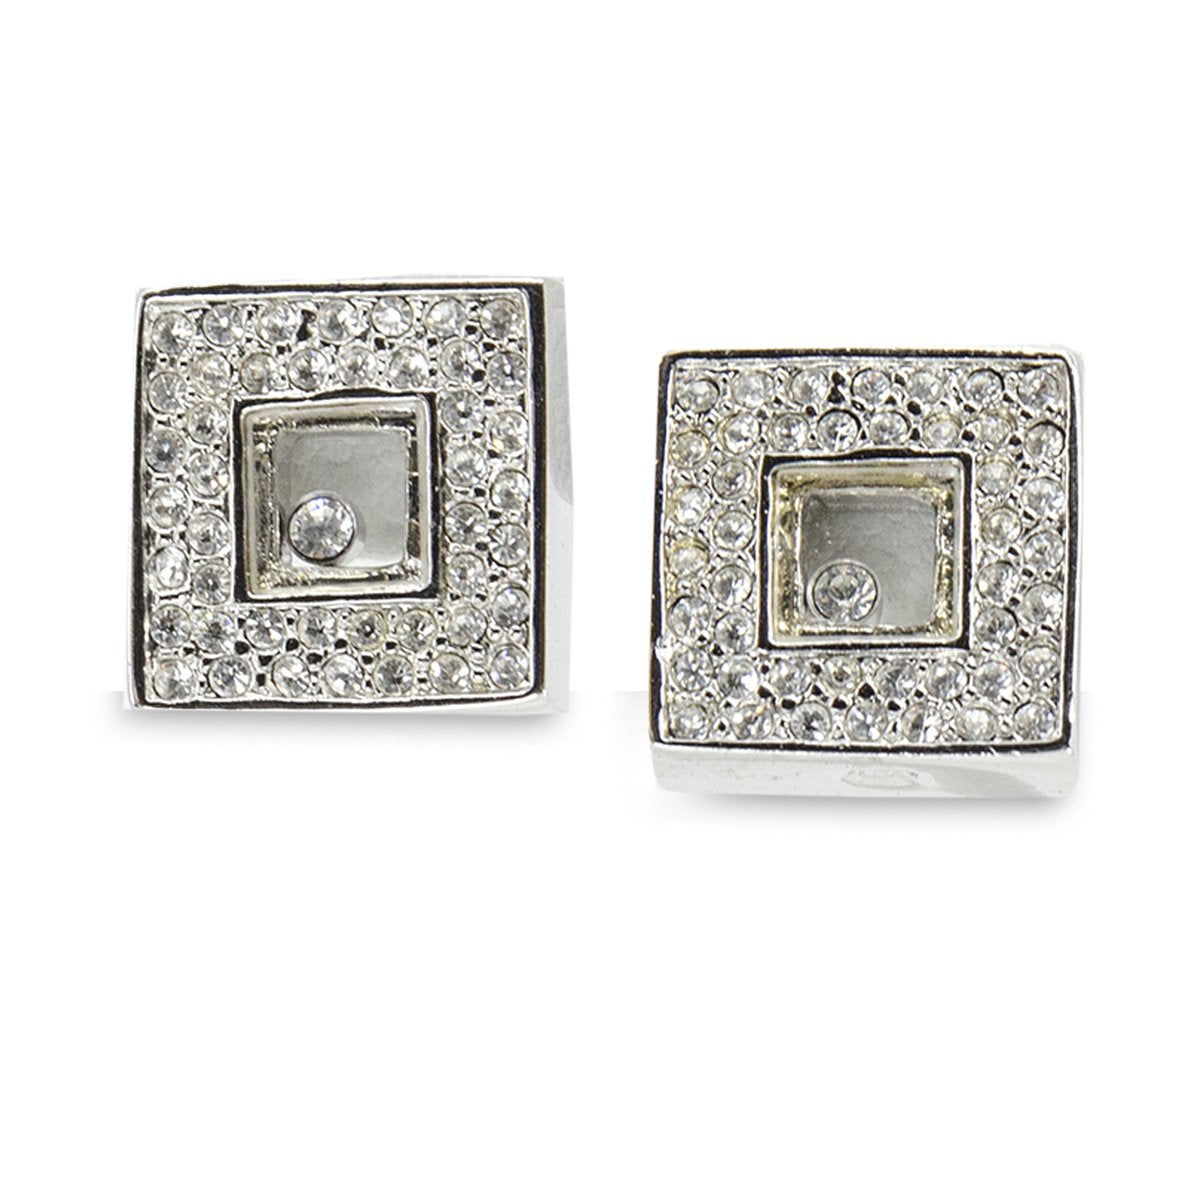 Vintage 90s Square Crystal Pierced Earrings, rhinestone earrings